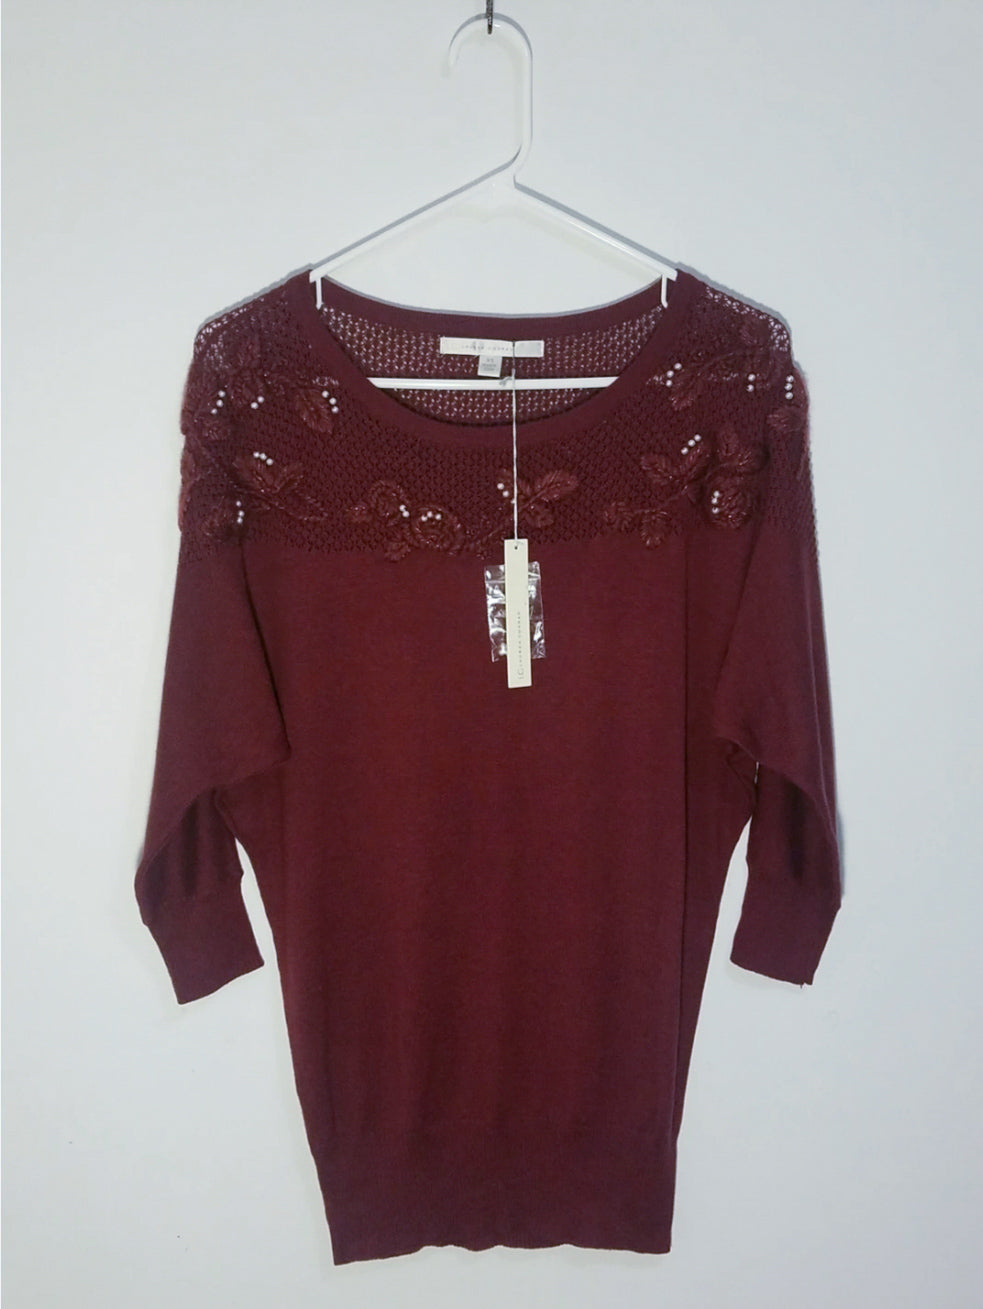 LC Lauren Conrad Sweater - XS